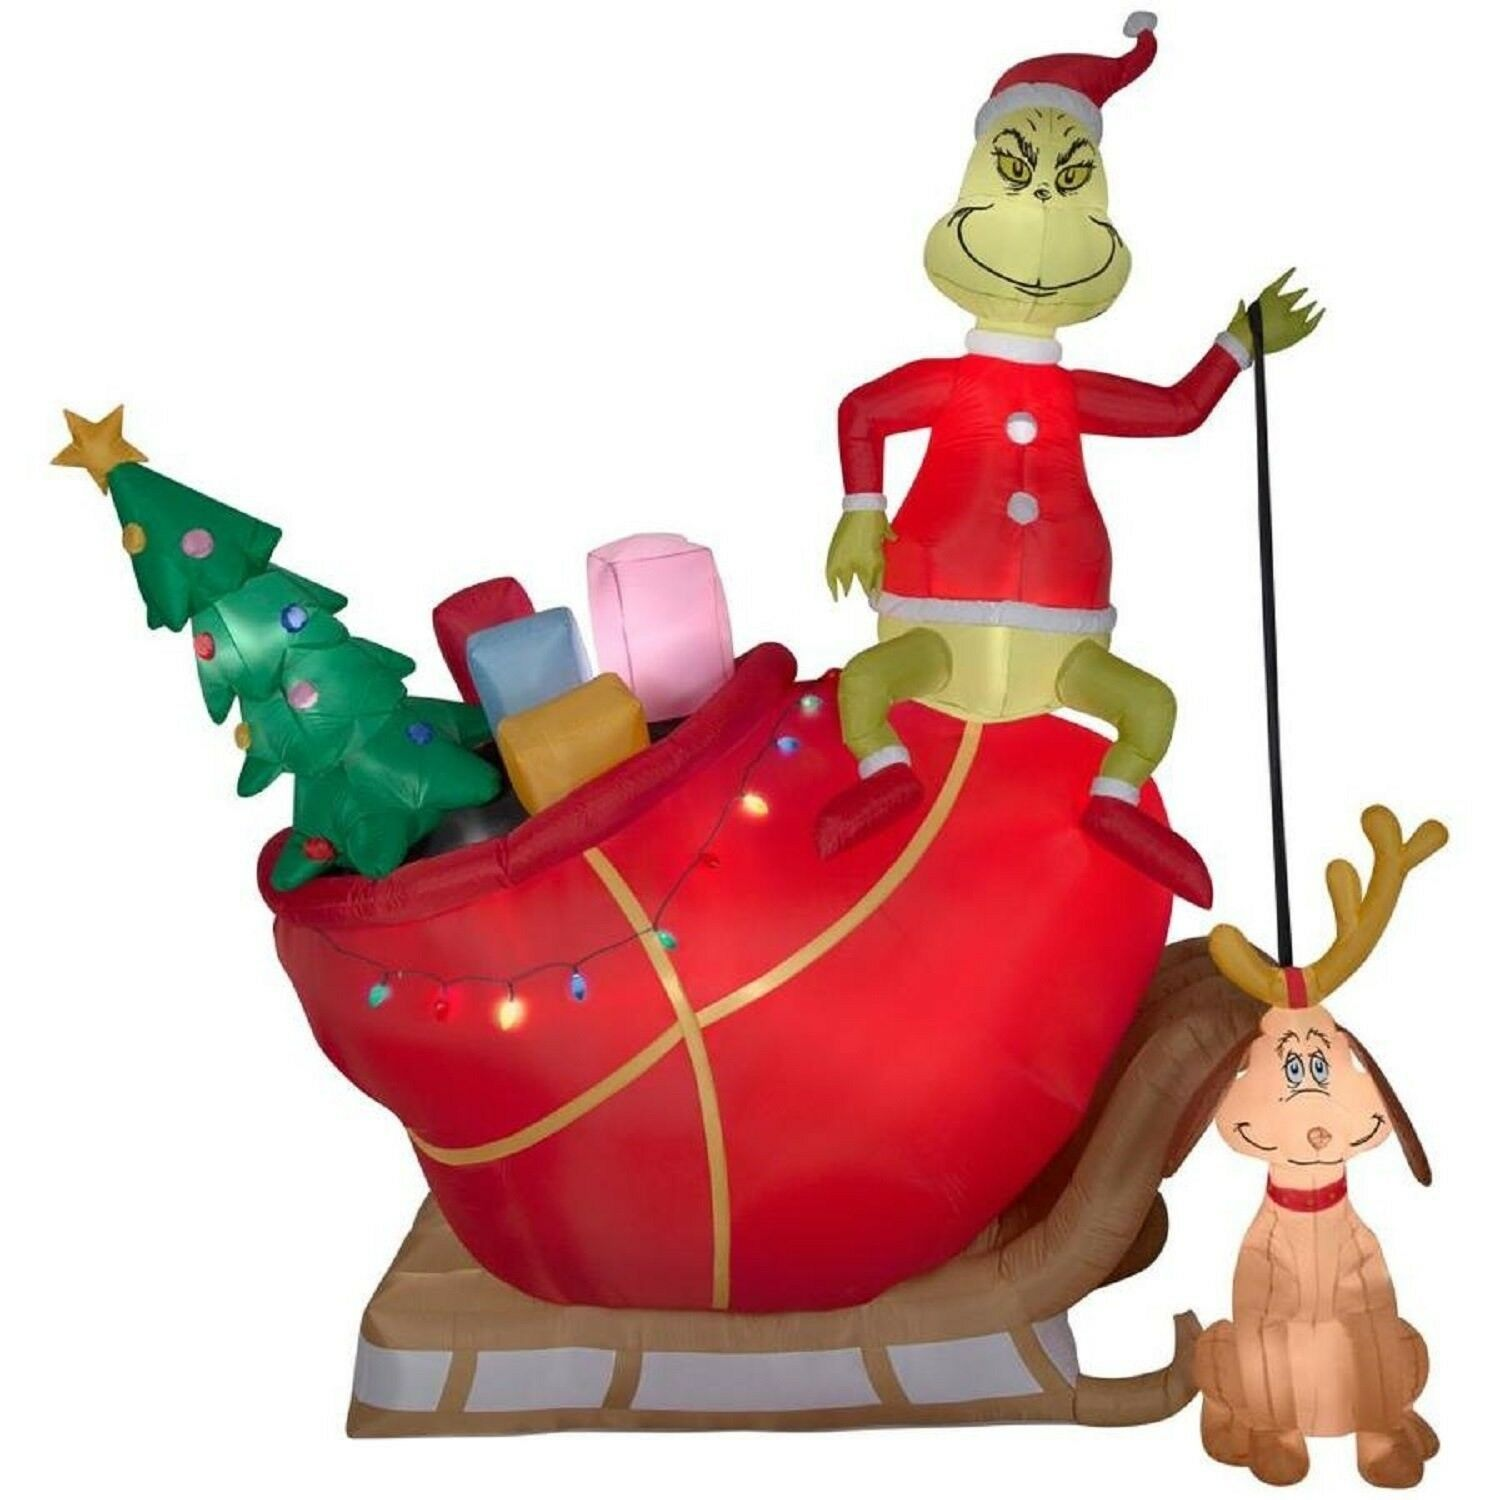 Christmas Inflatable 12' Grinch On Sleigh W/ Dog Max Dr Seuss Airblown By Gemmy